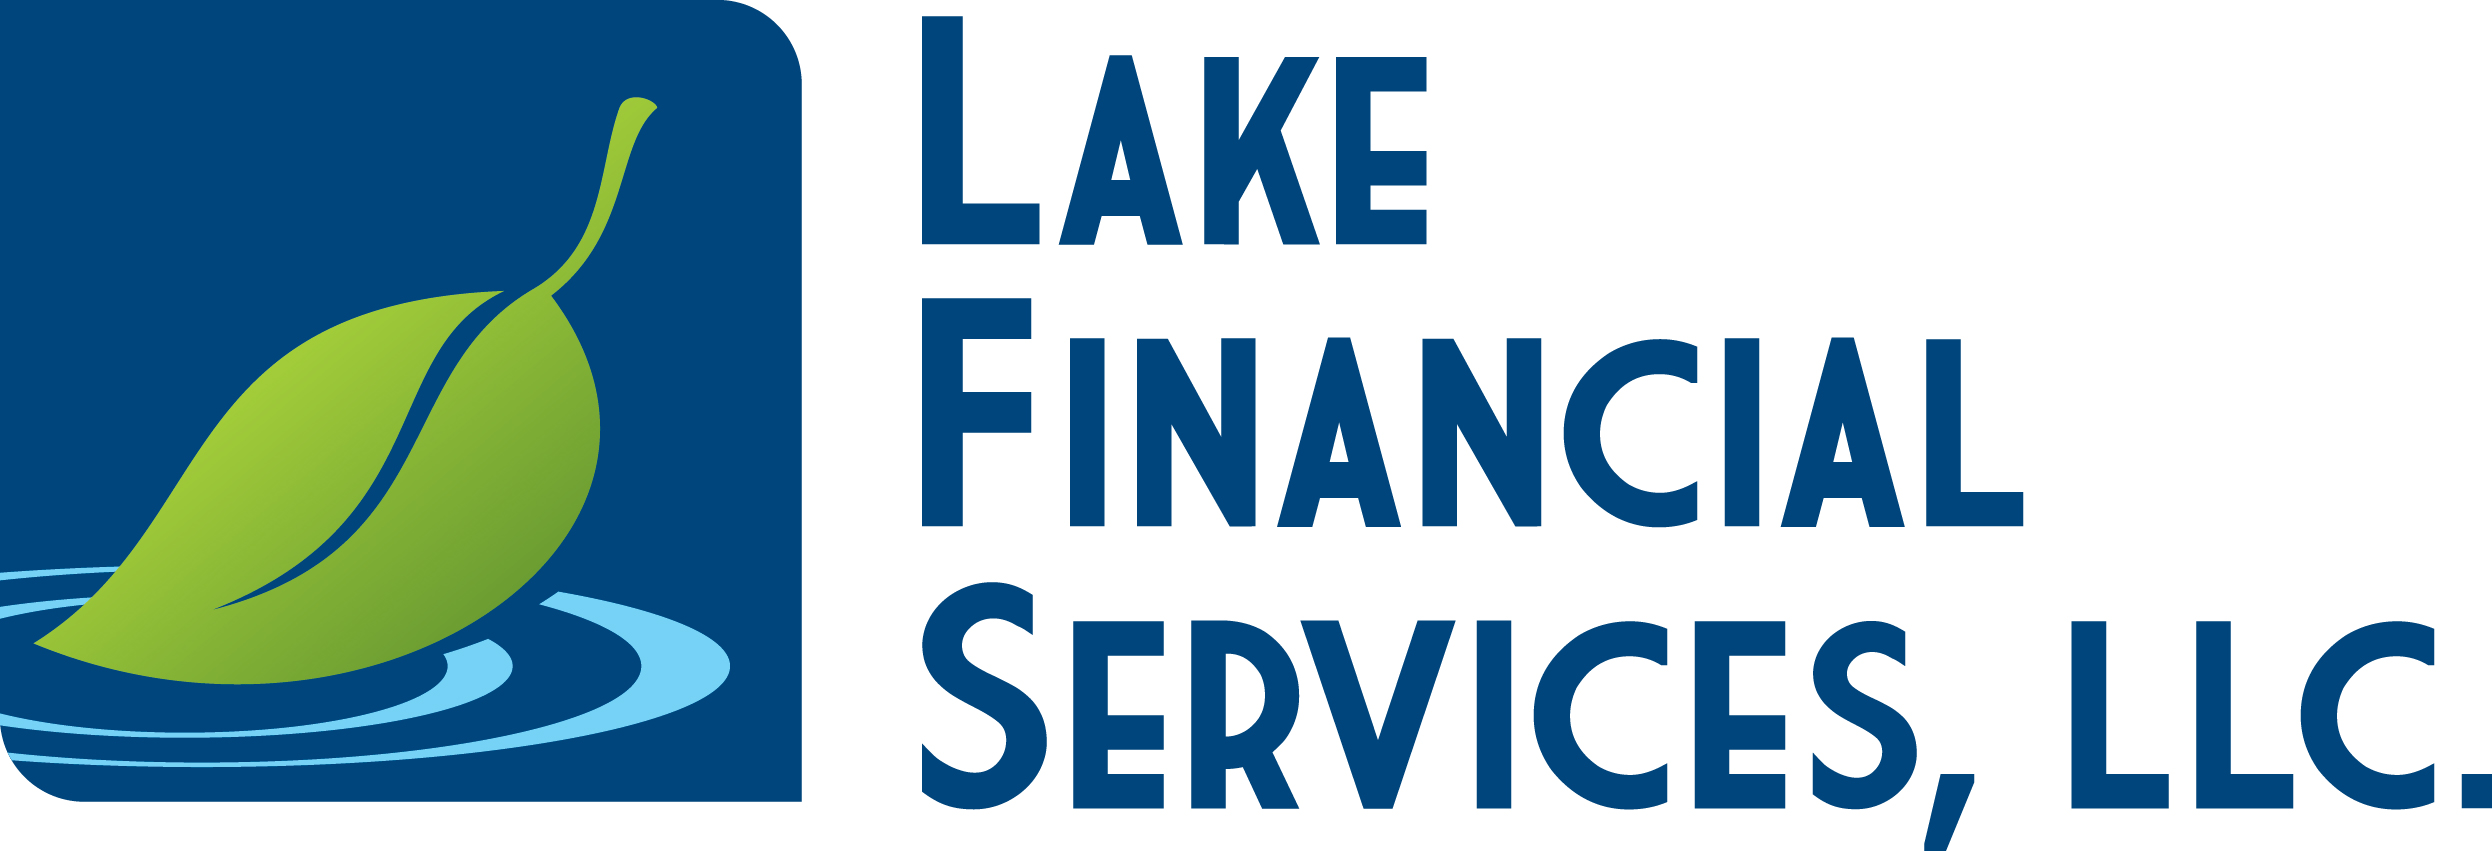 Lake Financial Services